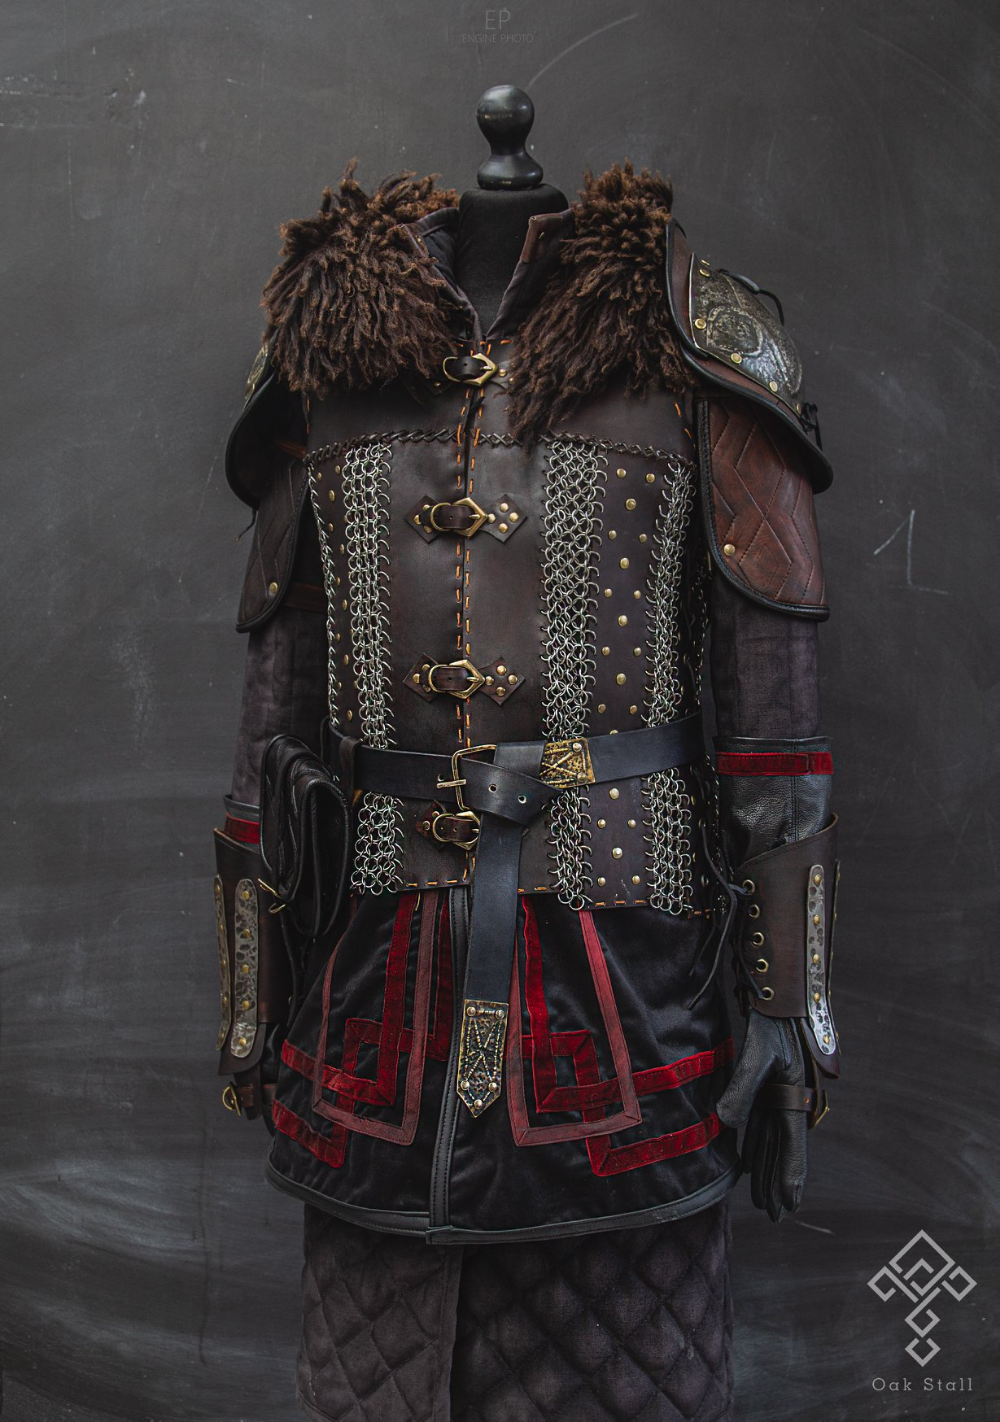 Pin by Brian Vance on Armor & Equipment Fantasy clothing